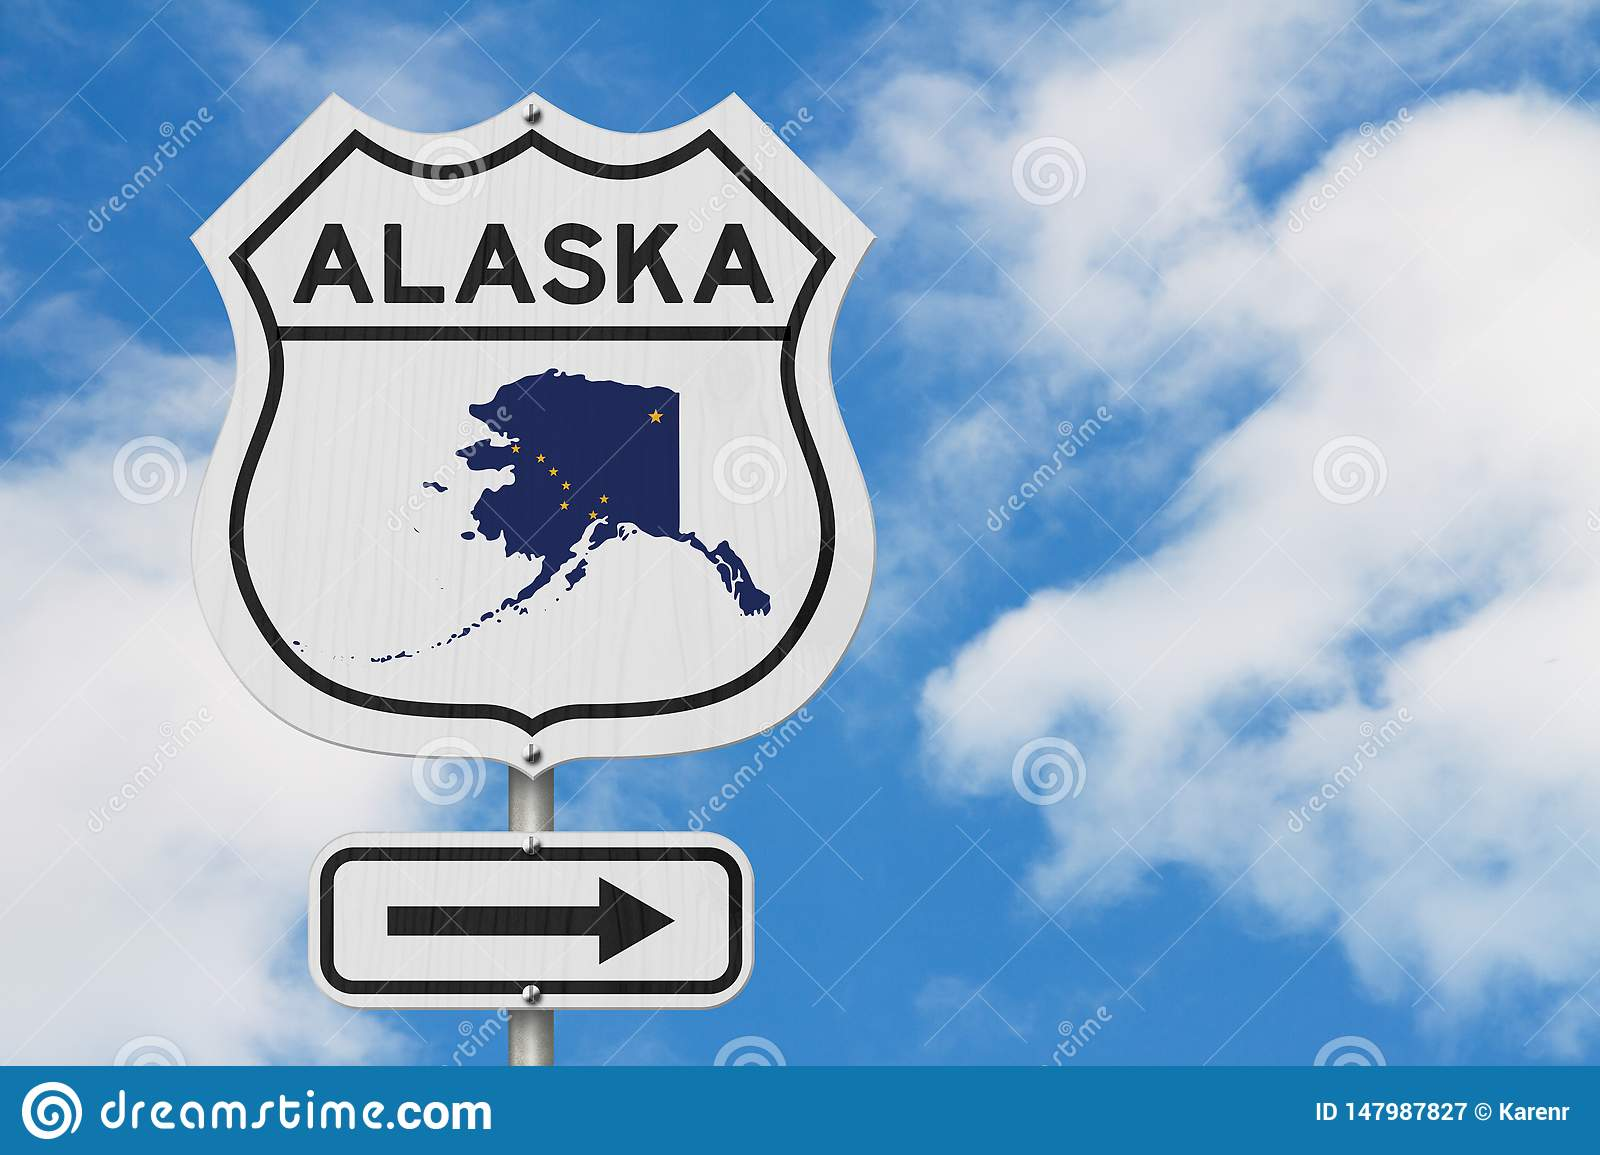 Alaska Map And State Flag On A USA Highway Road Sign Stock ...